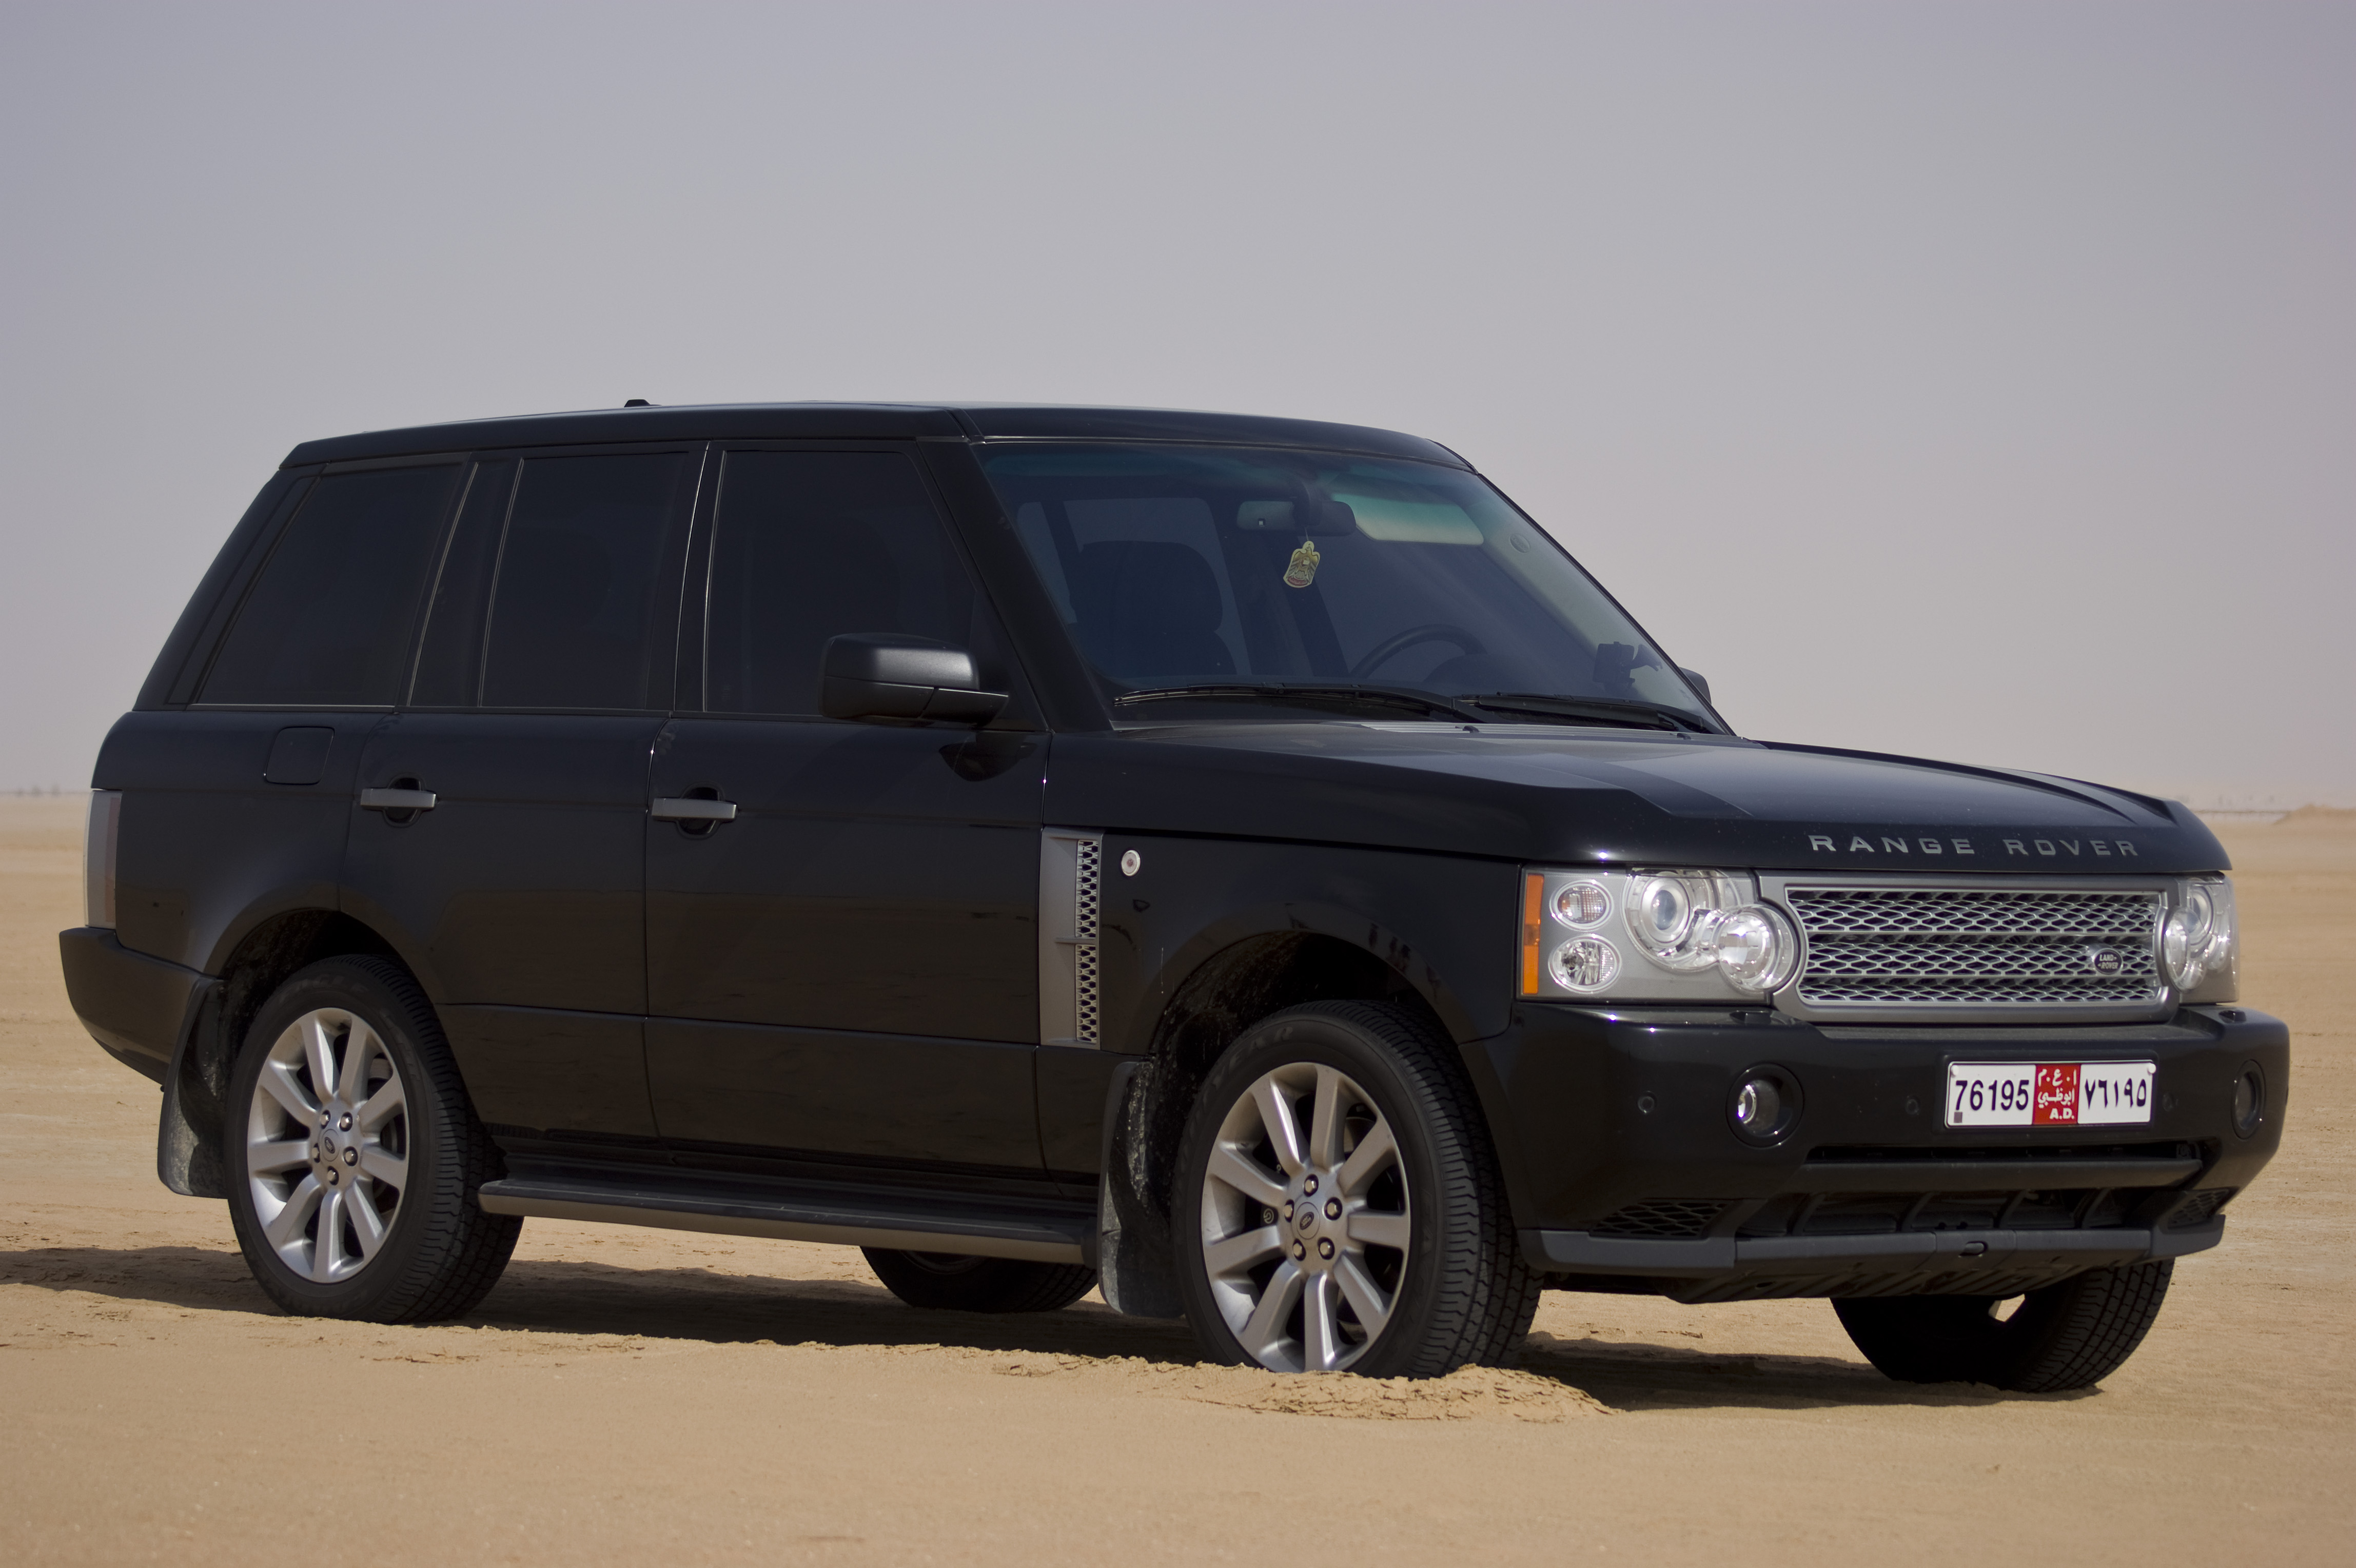 2006 land rover range rover images pictures and videos. Black Bedroom Furniture Sets. Home Design Ideas